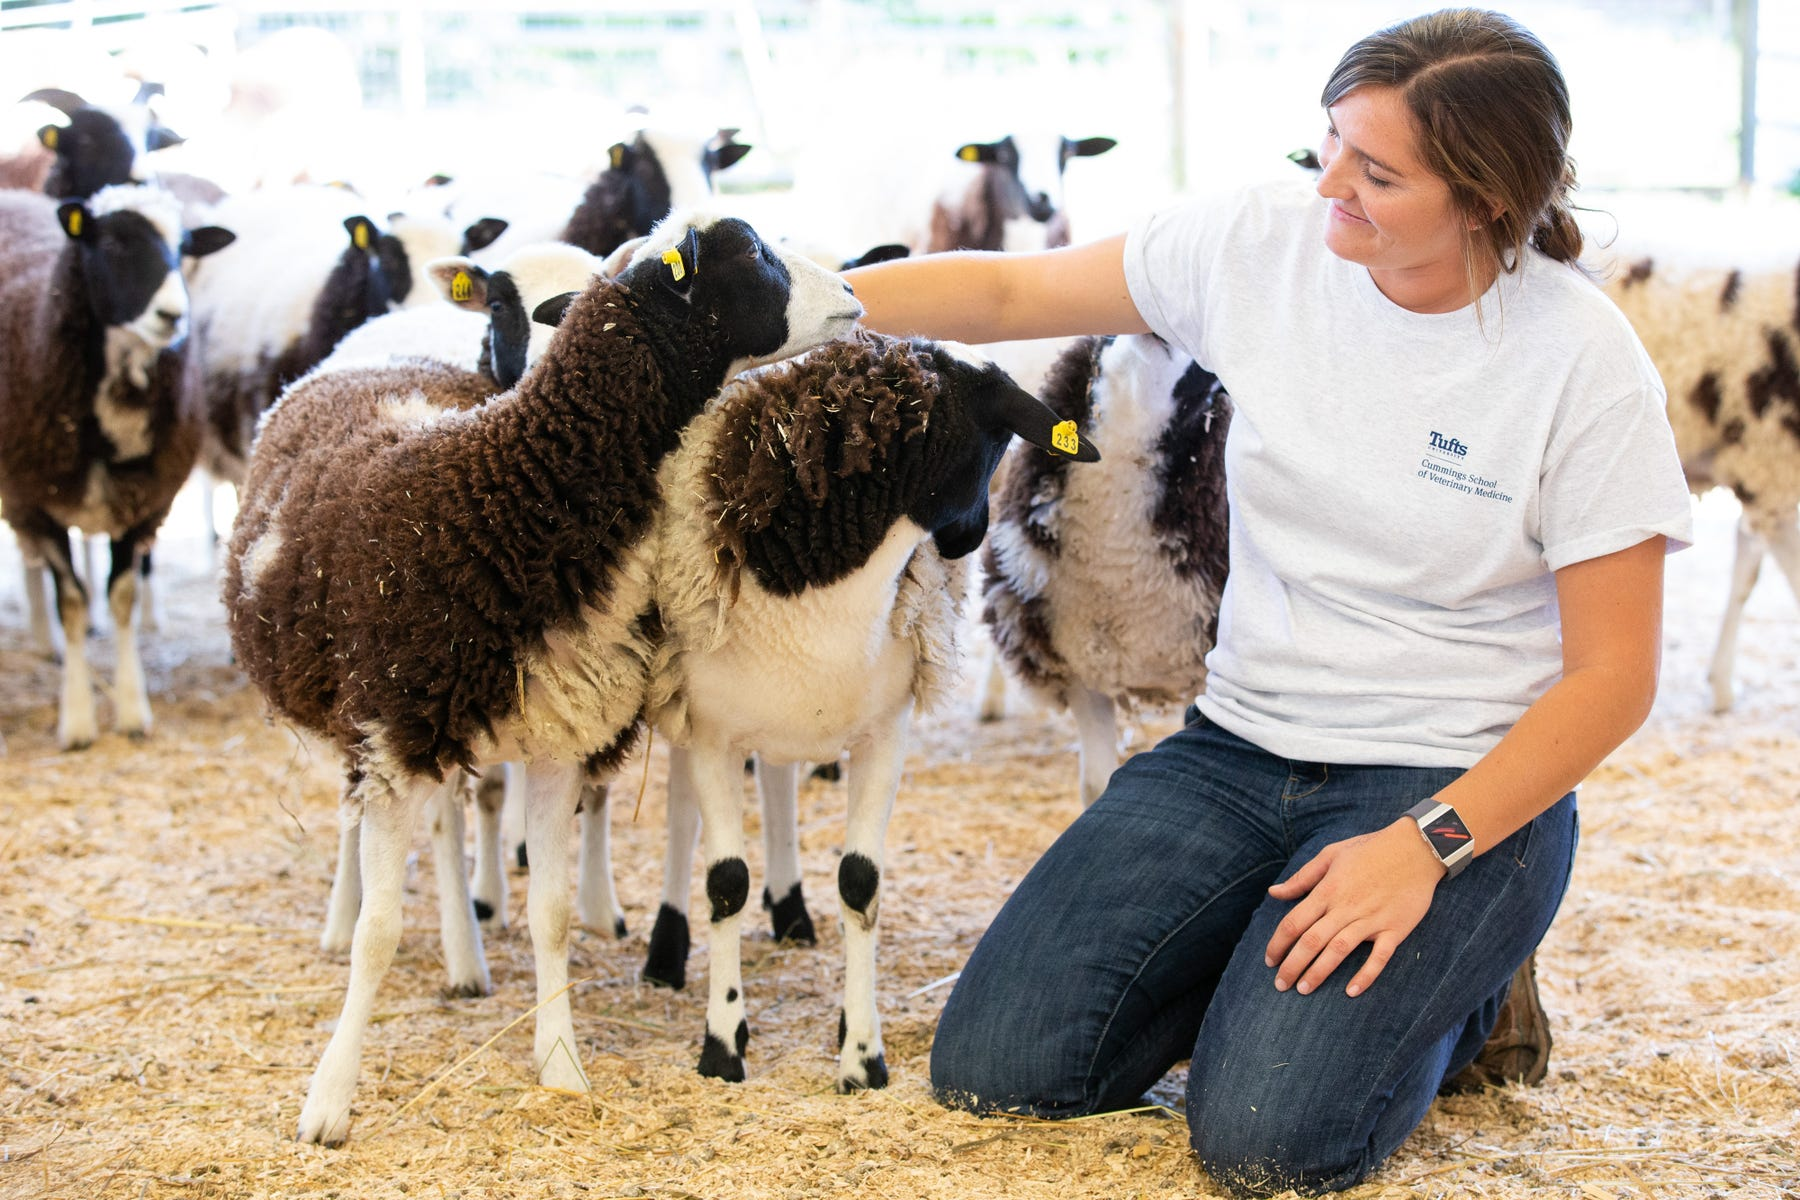 Stephanie Bertrand, assistant farm manager at Cummings School Farm at Cummings School of Veterinary Medicine at Tufts University, provides care for the Jacob sheep that are integral to the research being led by University of Massachusetts Medical School.